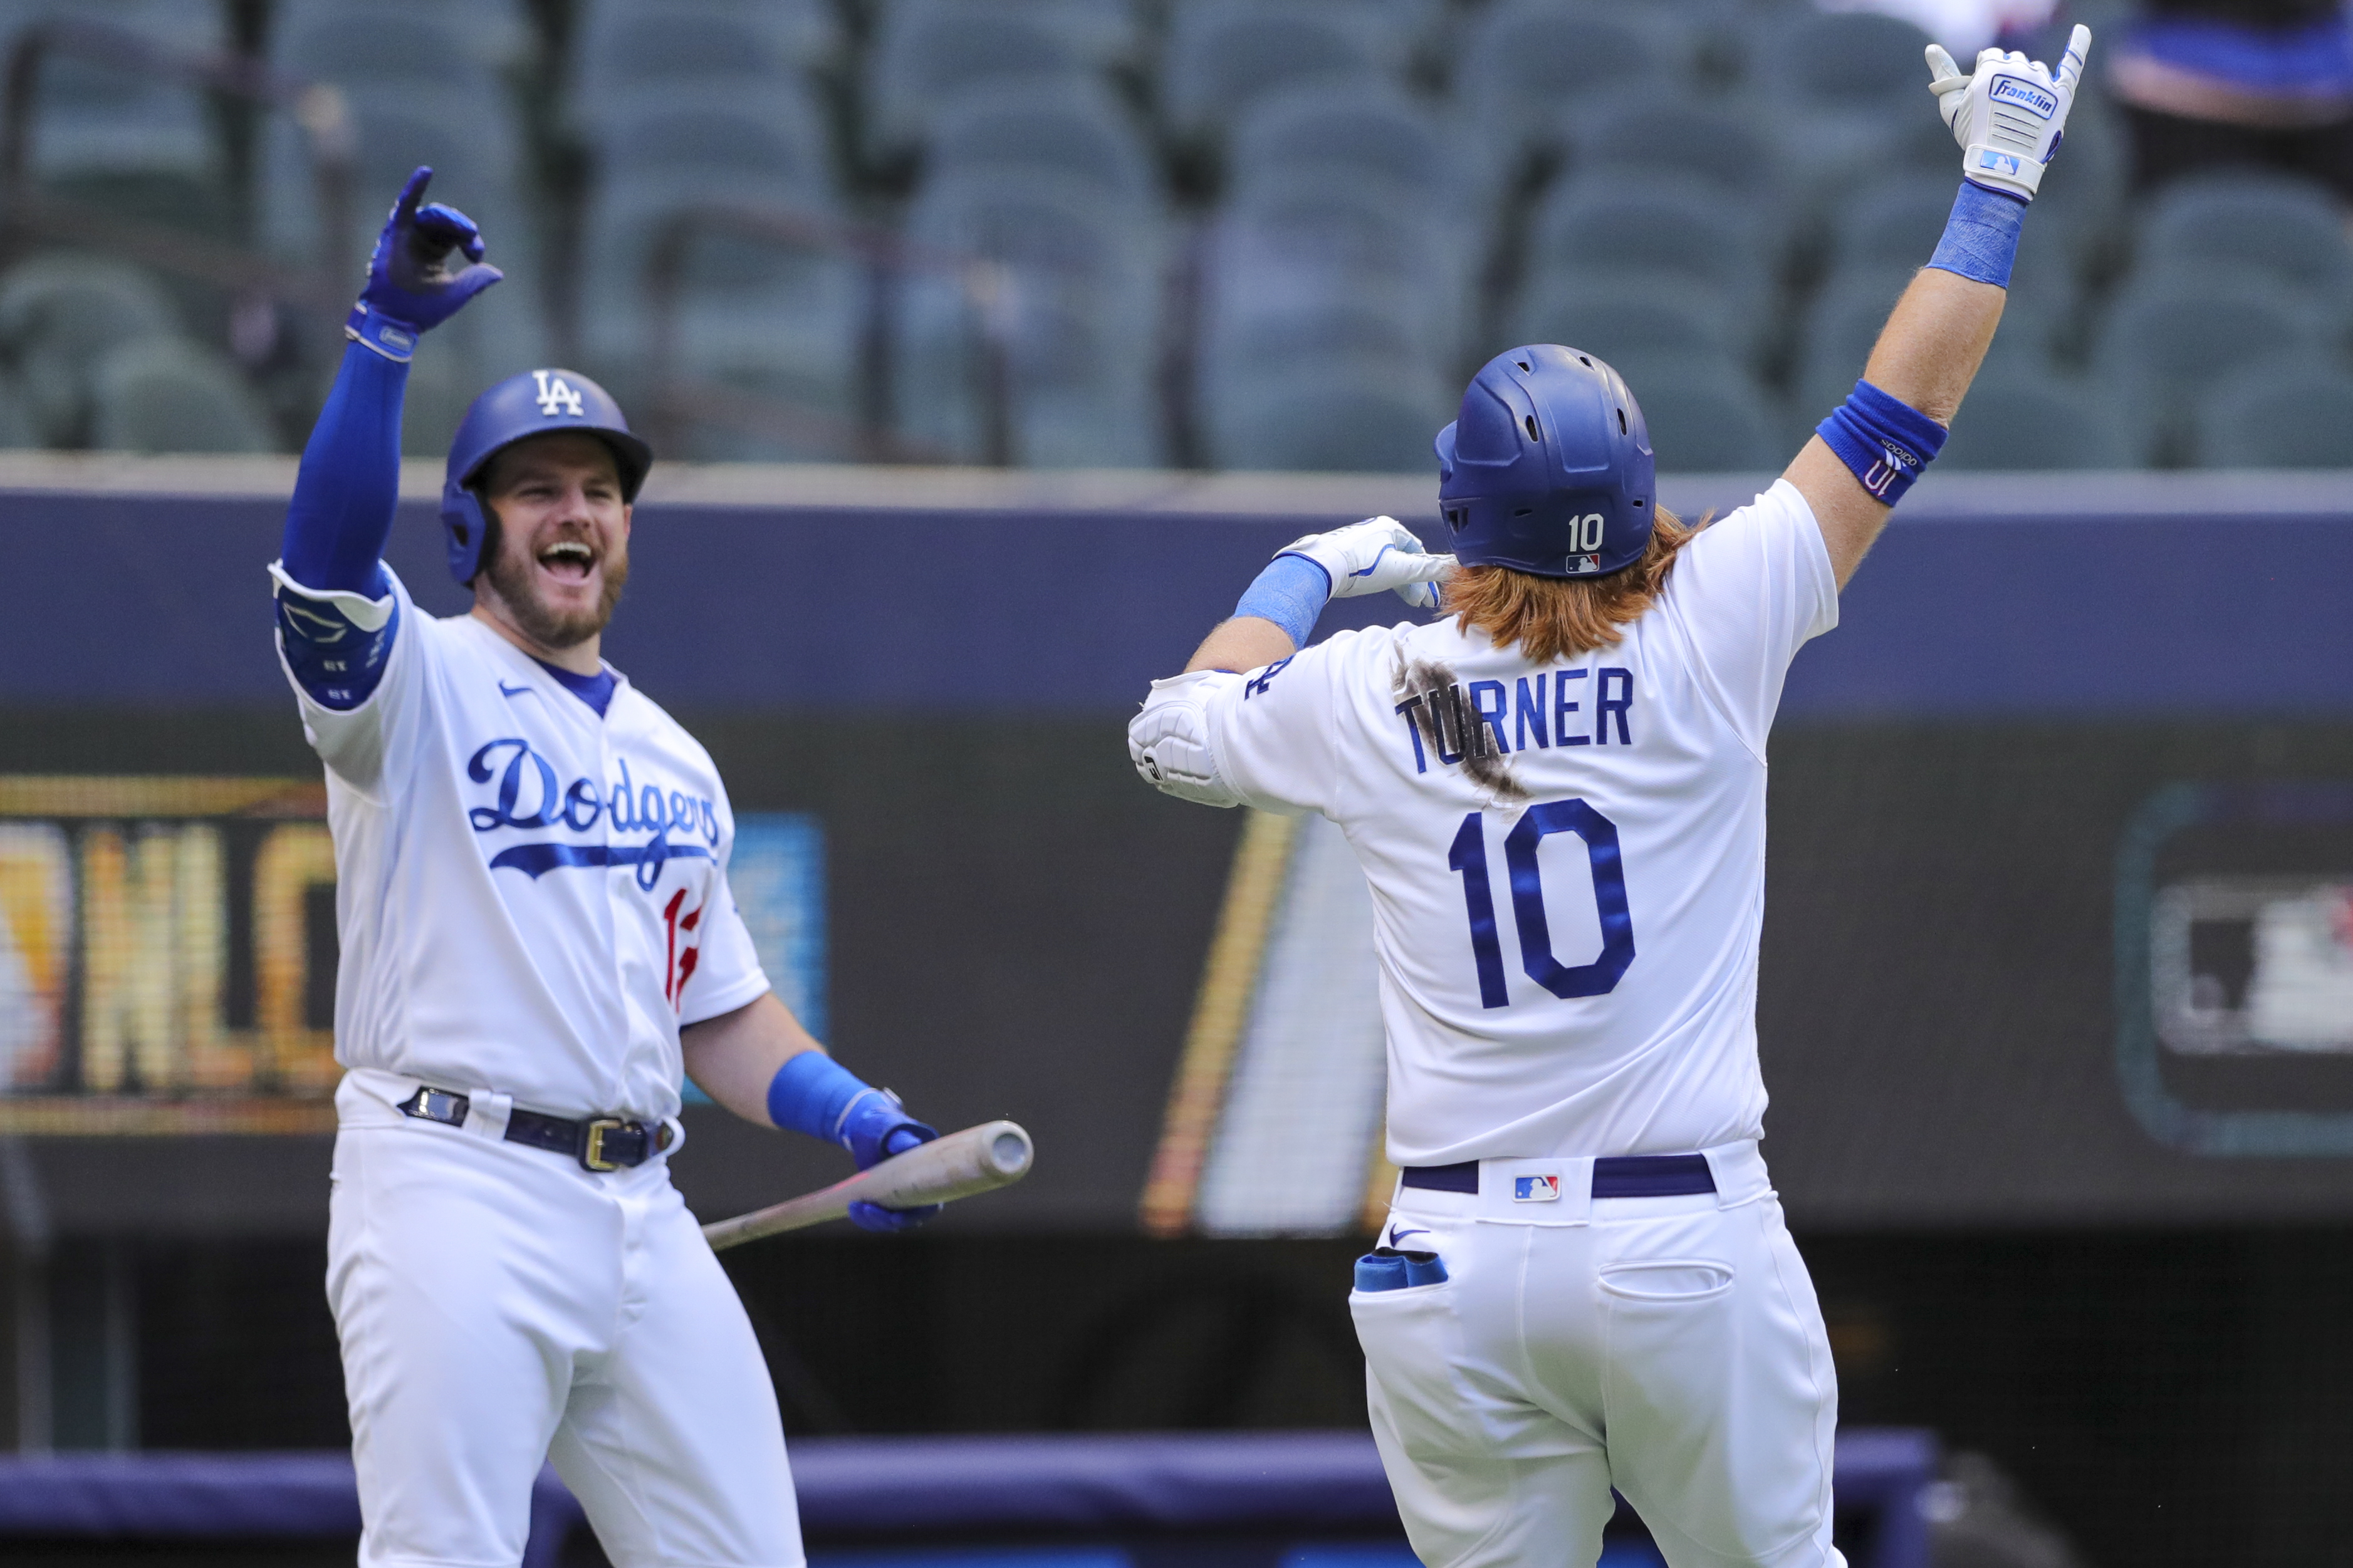 The Two Best Words in Sports: Game 7. Dodgers Beat Braves 3-1 to Stay Alive and Even NLCS at 3-3